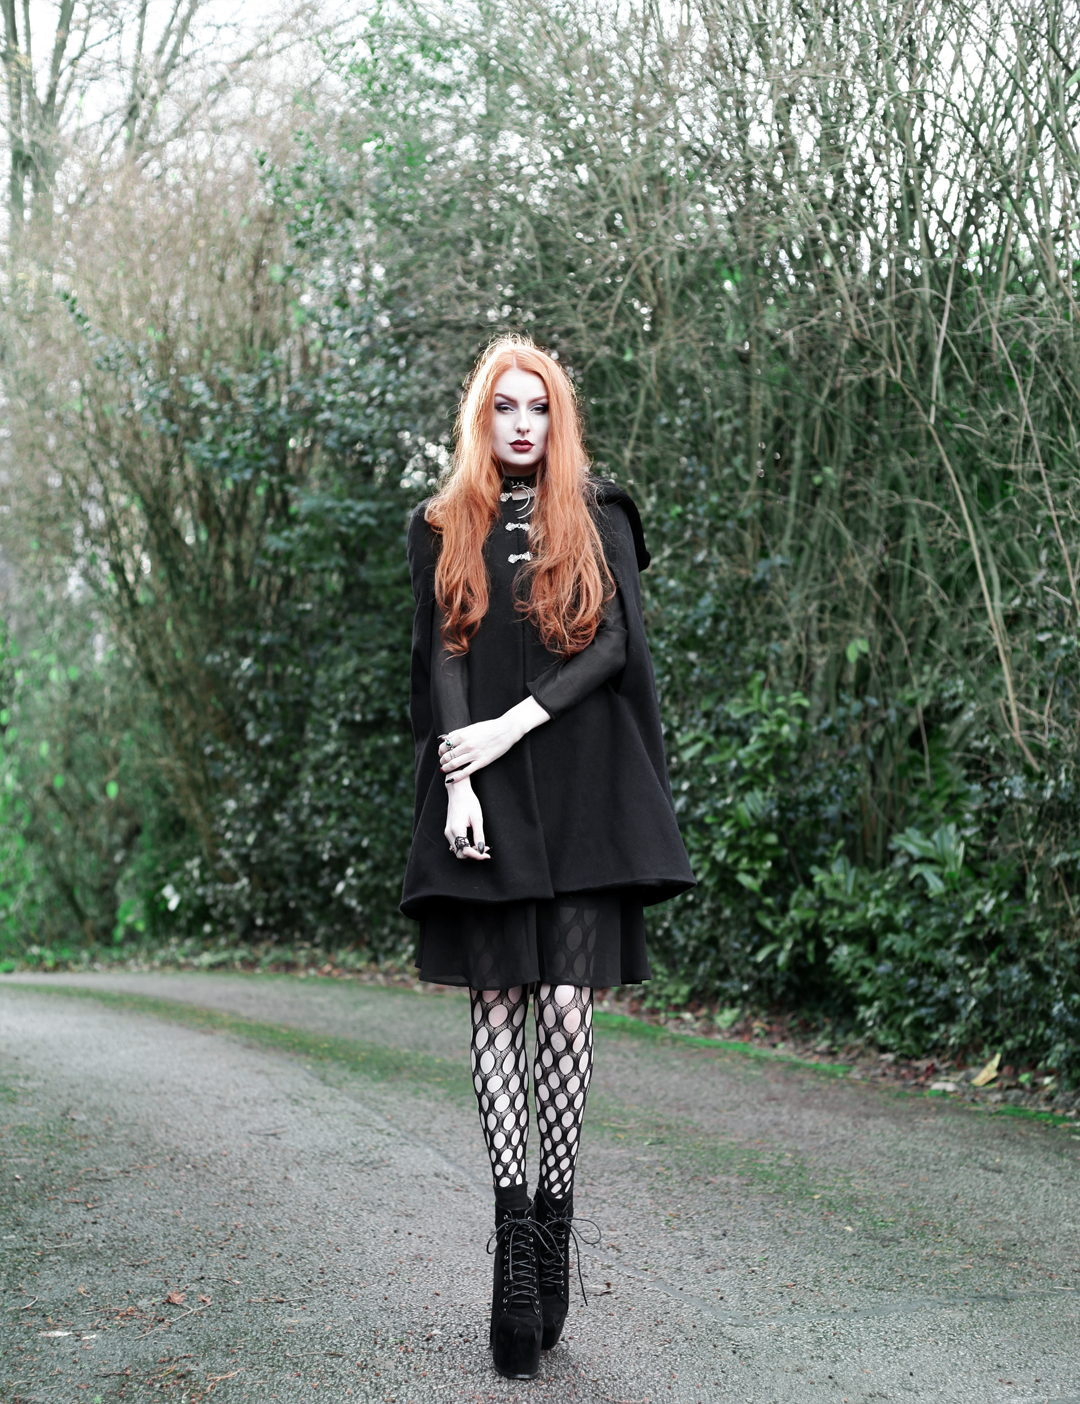 Olivia Emily wears Dark Thorn Clothing Myrtle Cape, Asos black ruffle midi dress, Killstar Dita Slave collar choker, Asos western belt, Asos pothole tights, faux suede platform heels boots